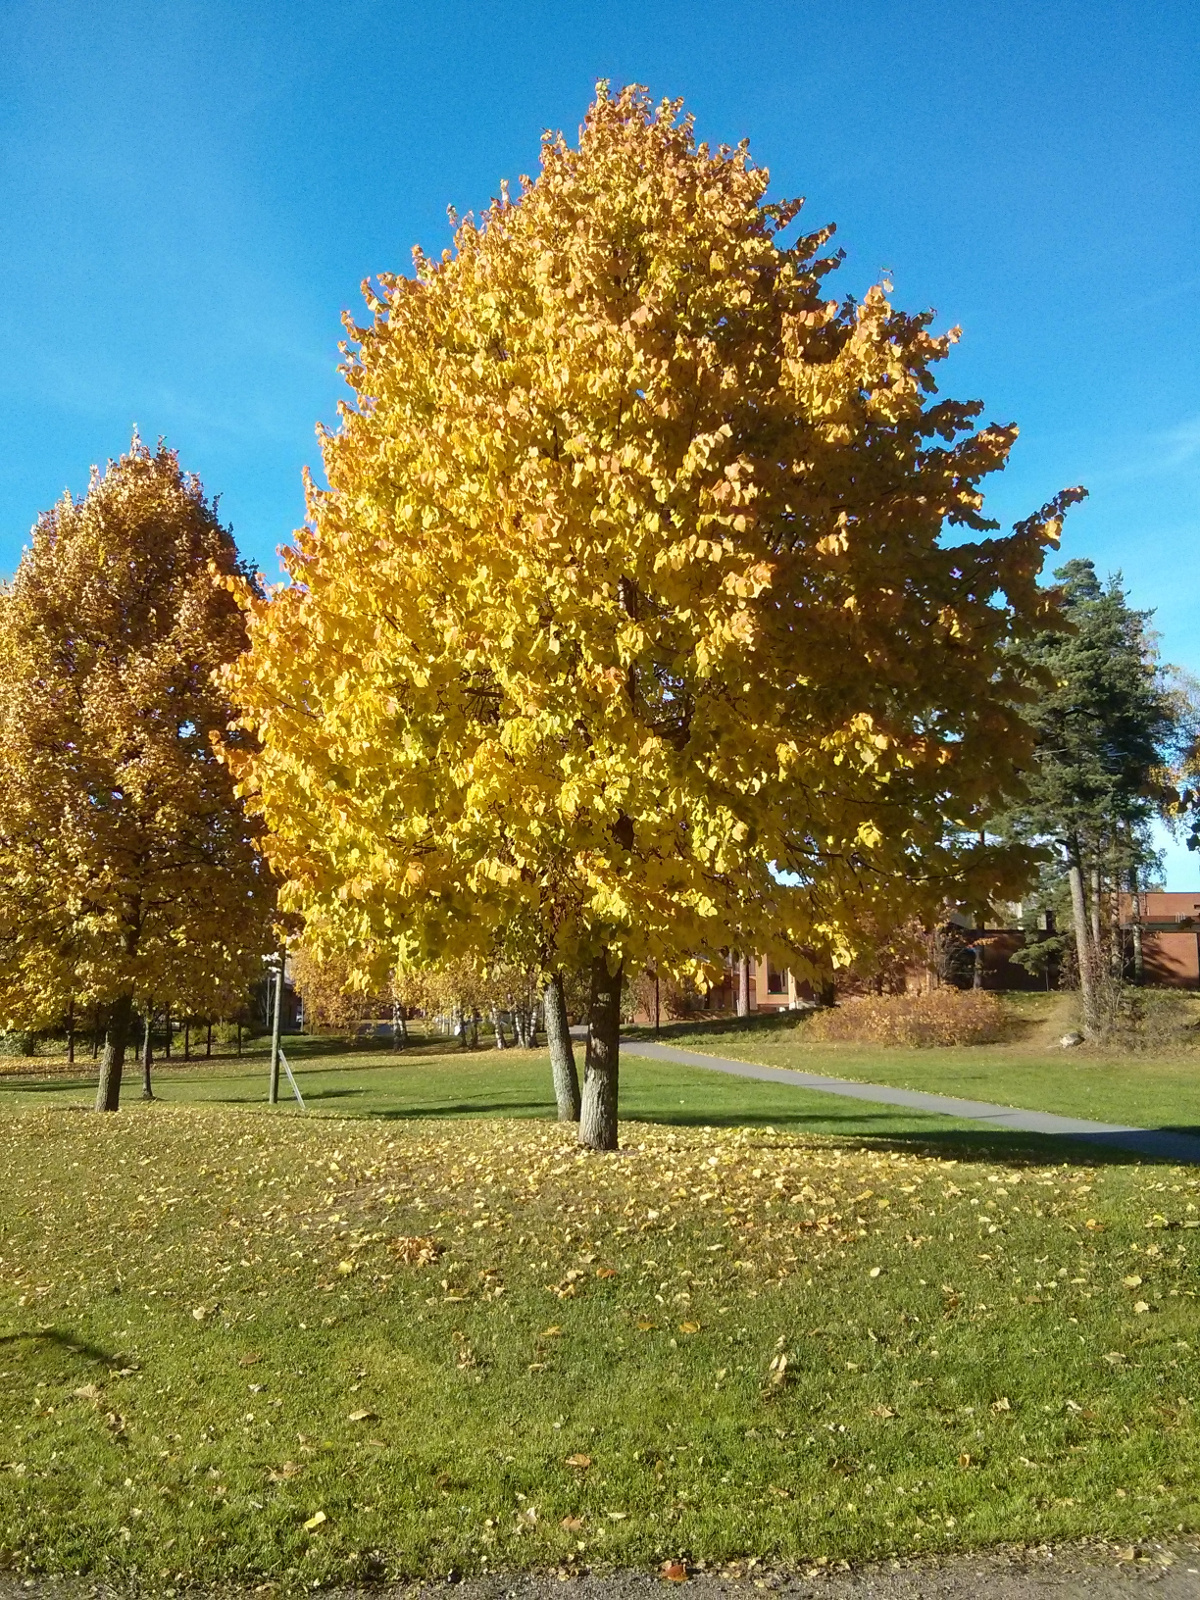 A tree during fall/ruska